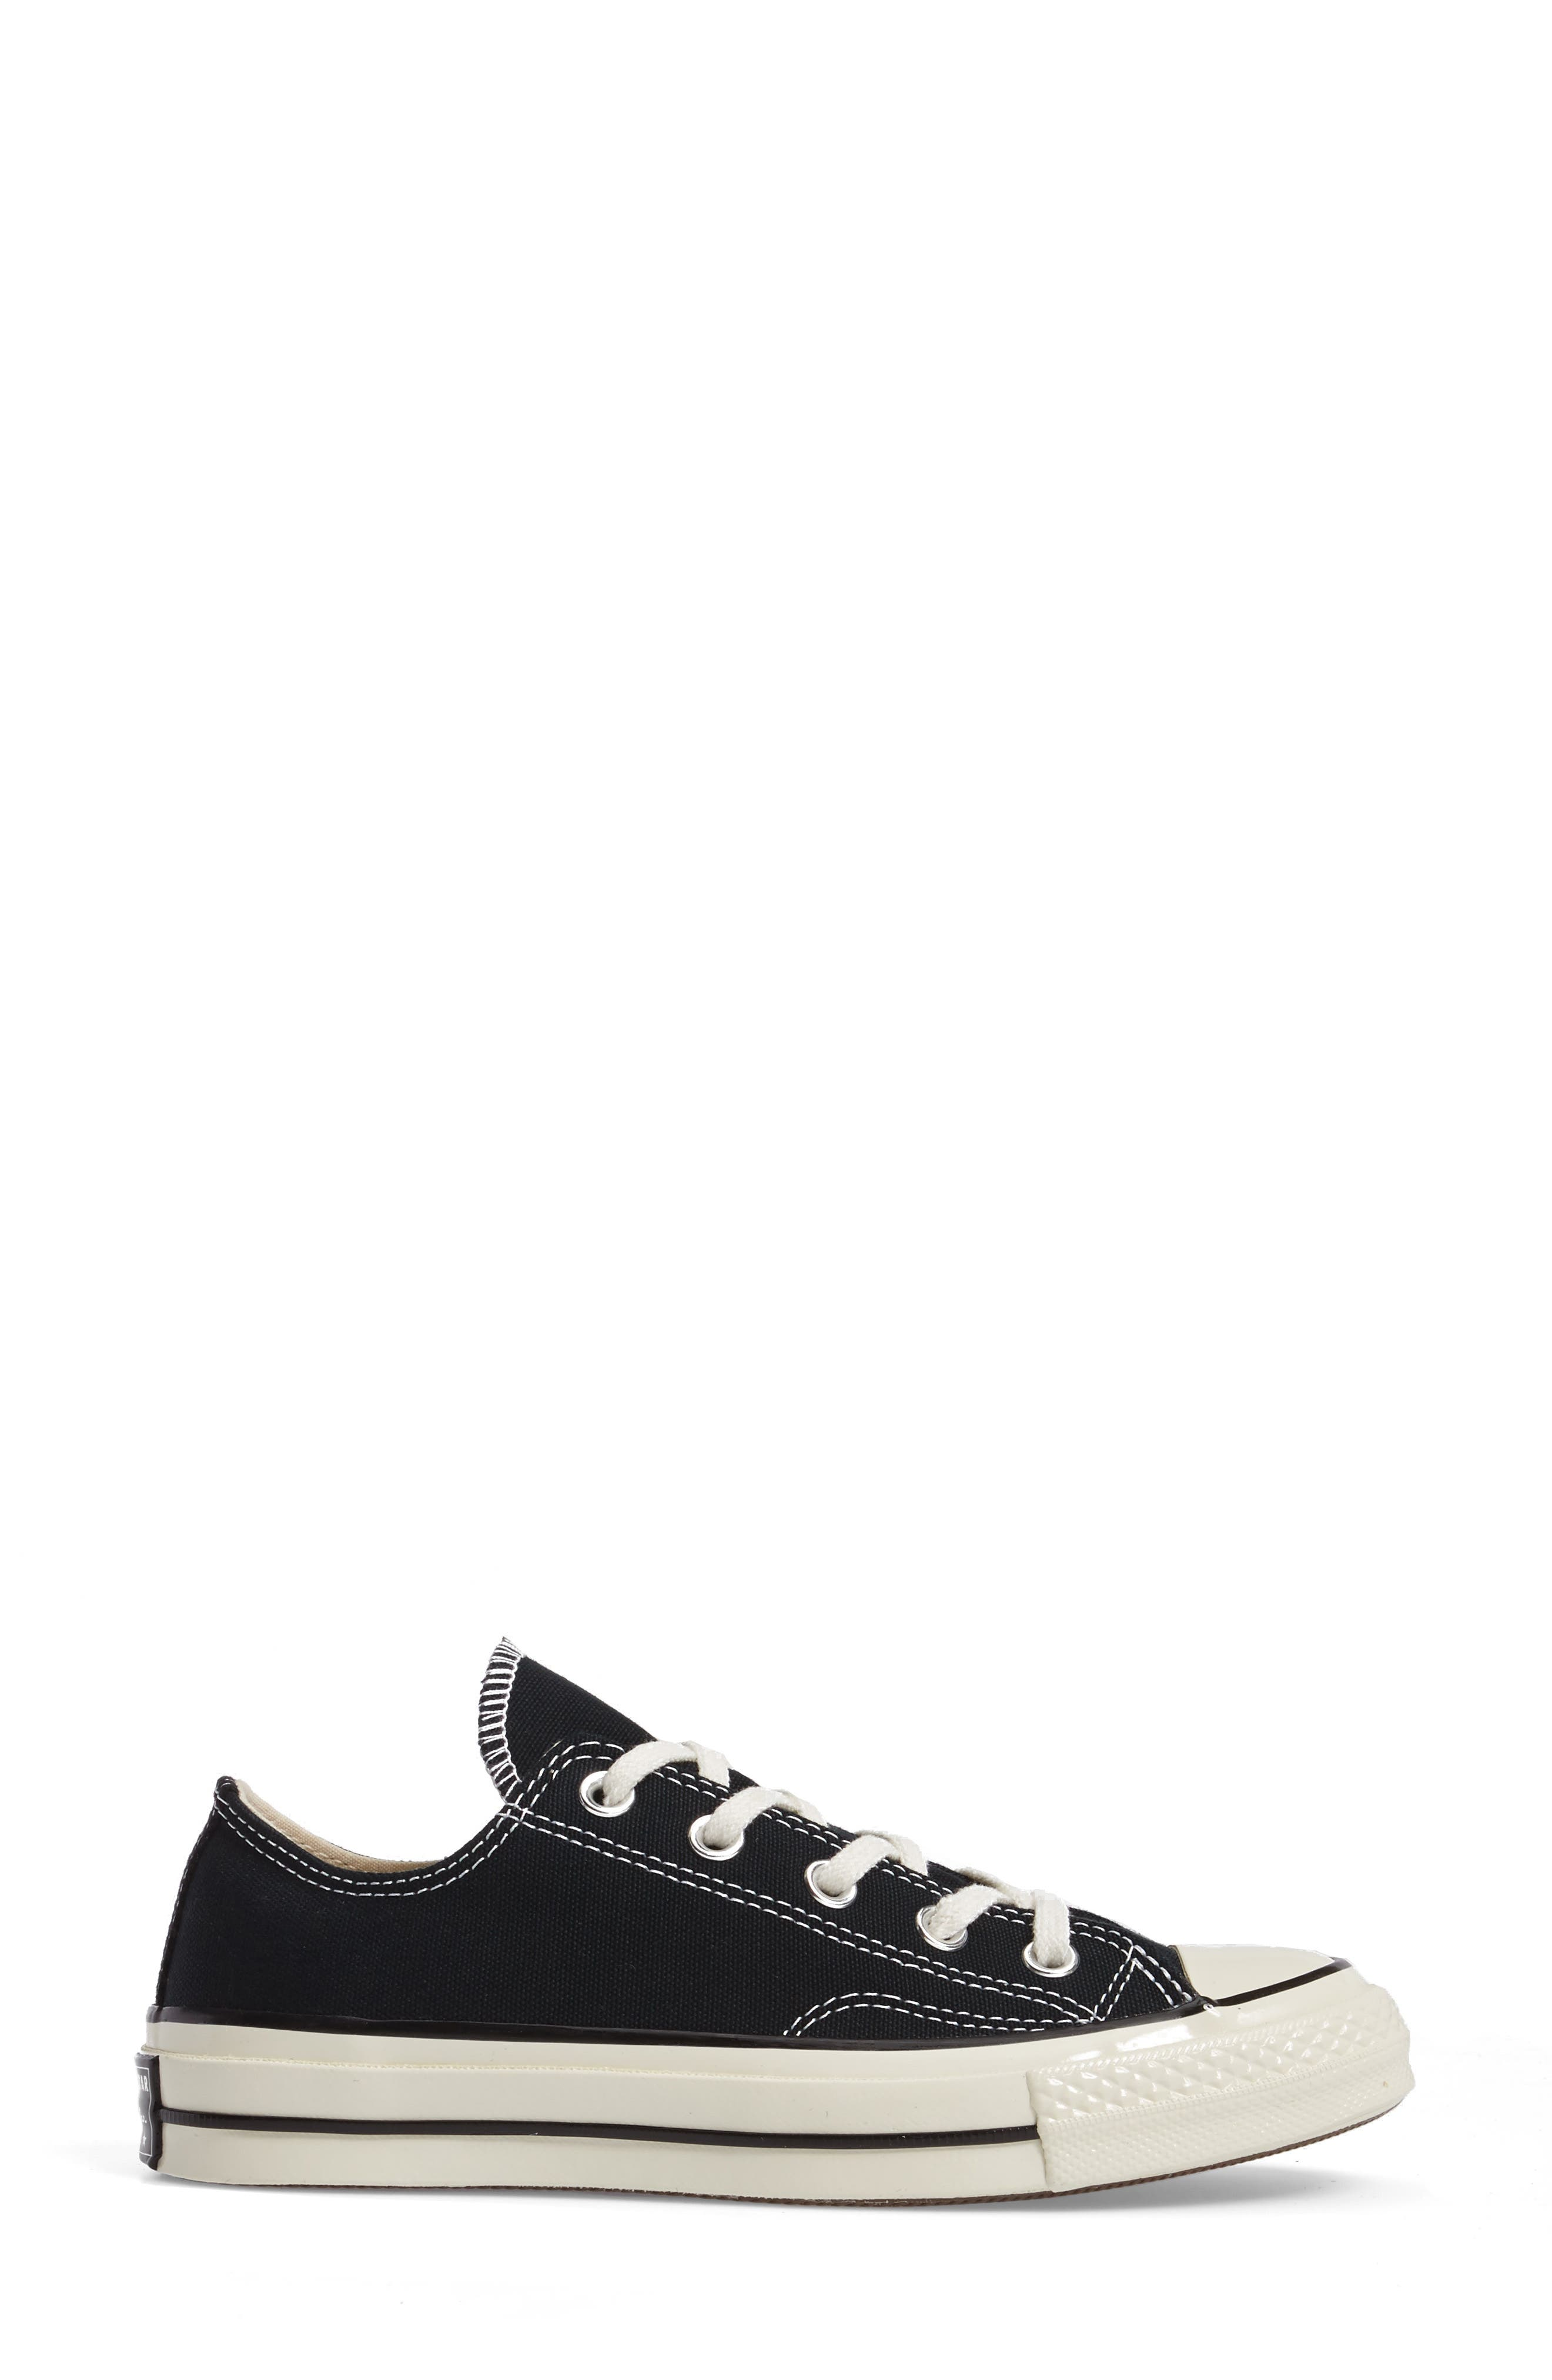 Chuck Taylor<sup>®</sup> All Star<sup>®</sup> Ox Low Top Sneaker,                             Alternate thumbnail 3, color,                             Black